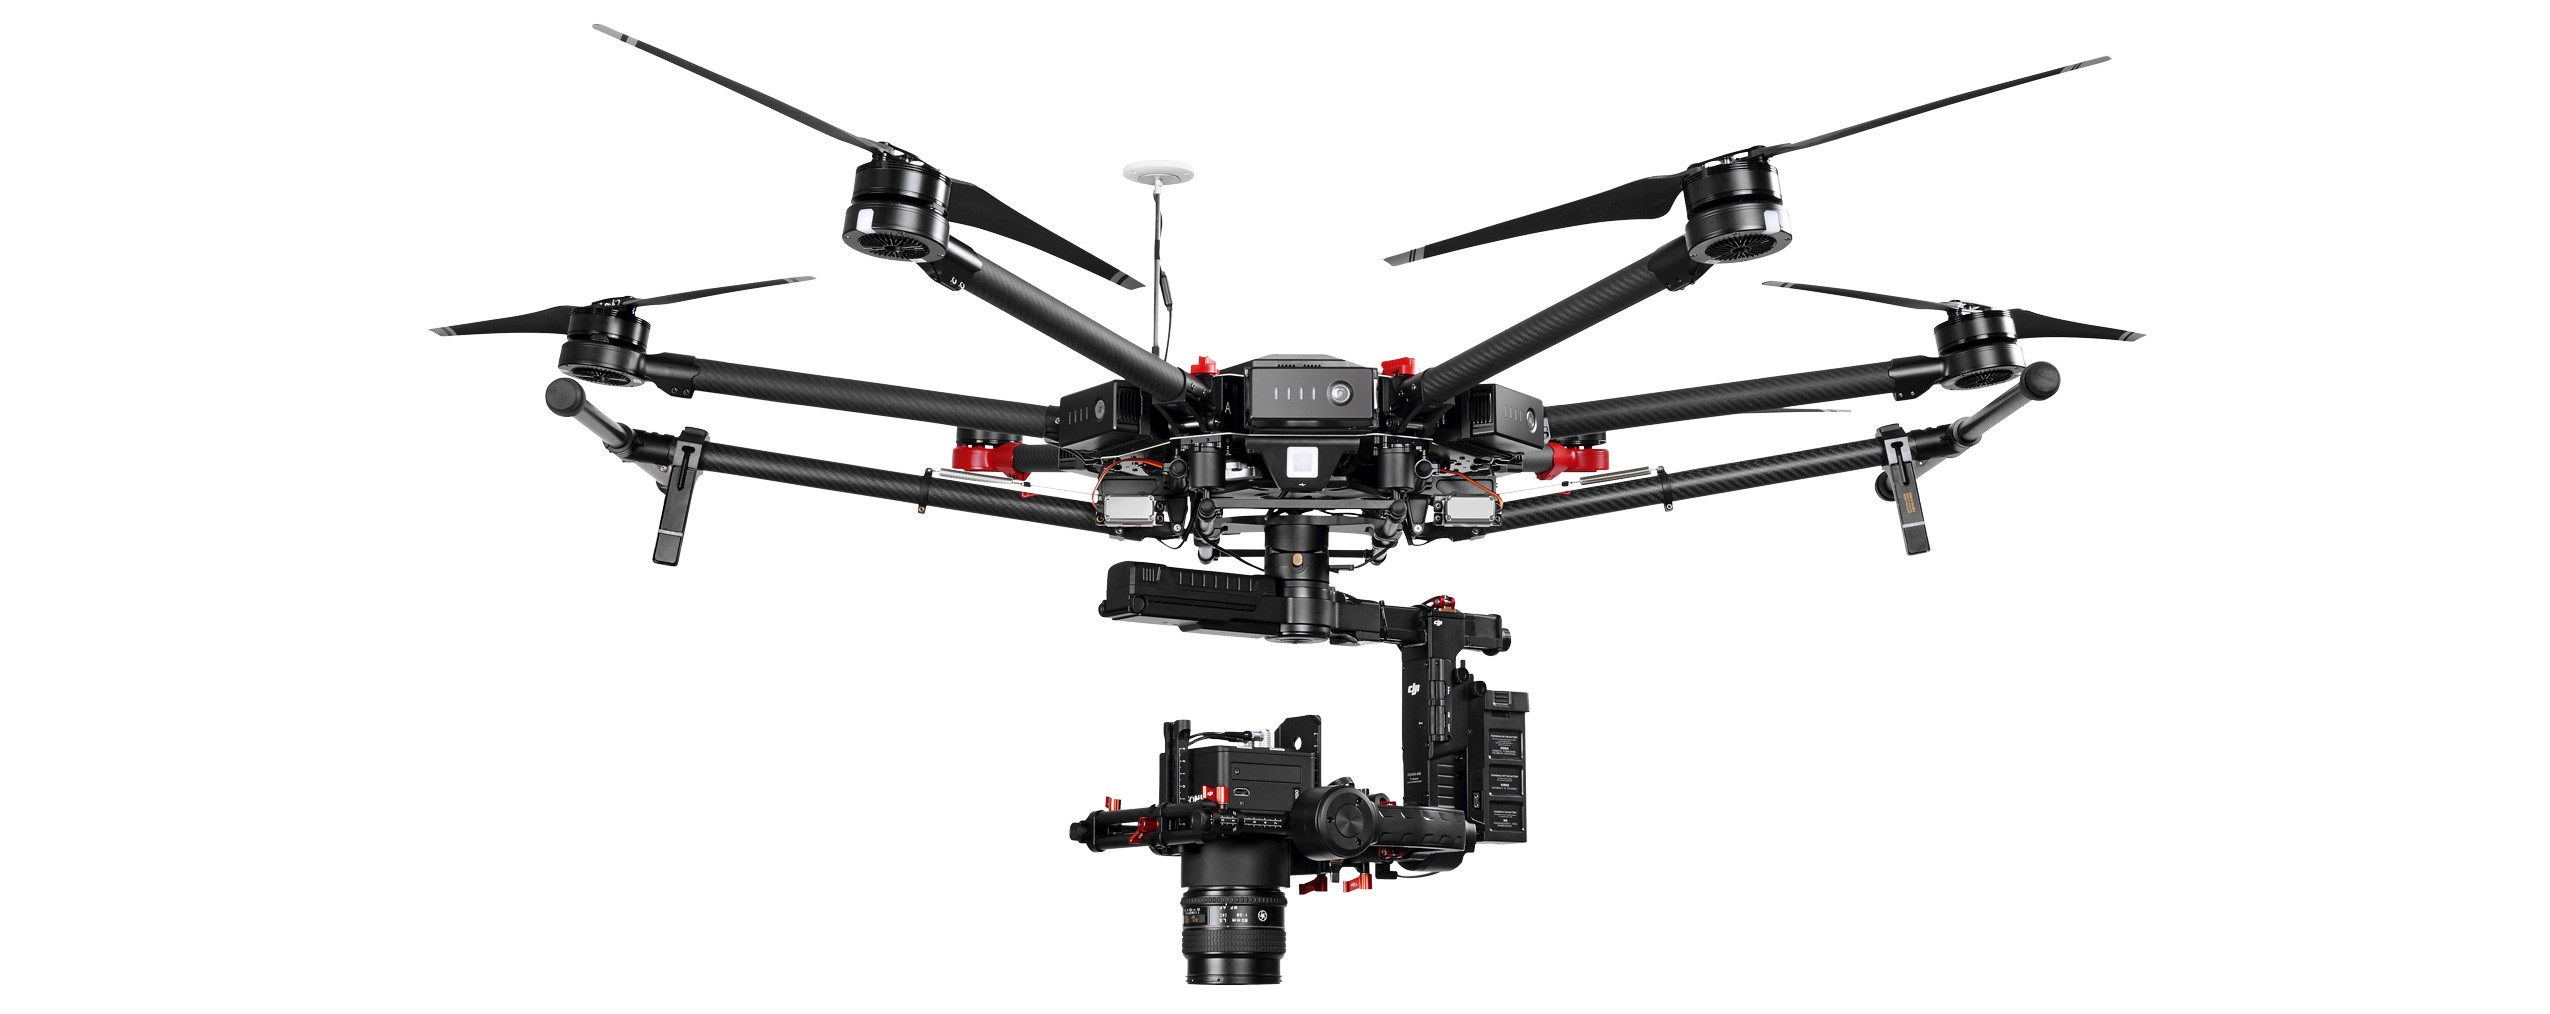 MANUALI DJI MATRICE 600 KIT ENAC